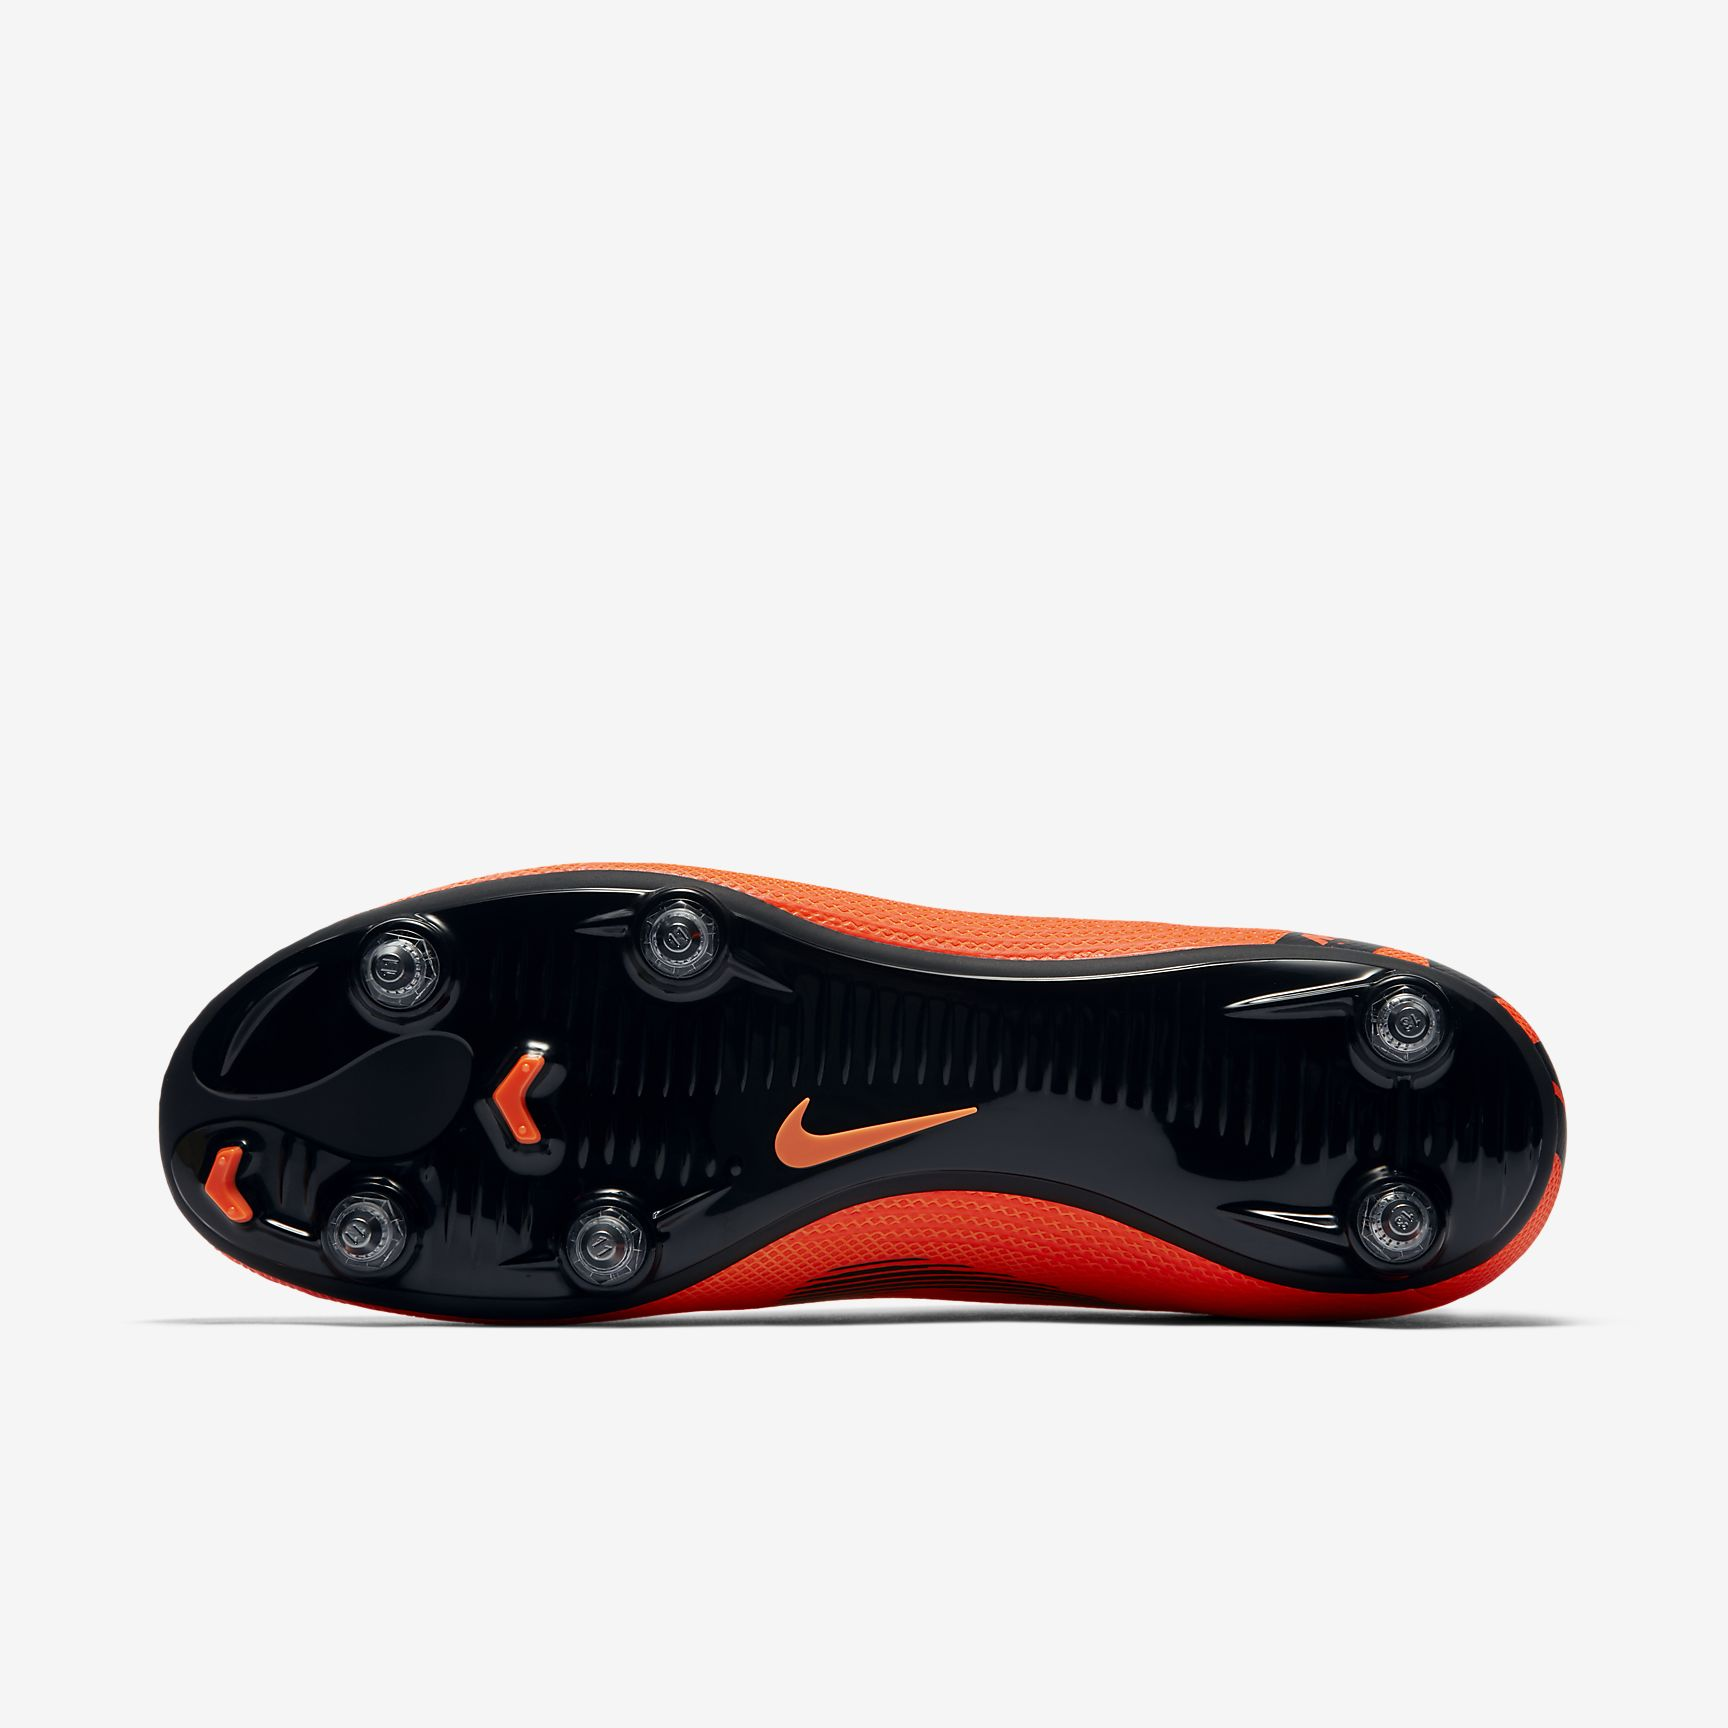 chaussures-football-Nike-Mercurial-Vapor-XII-Academy-img2